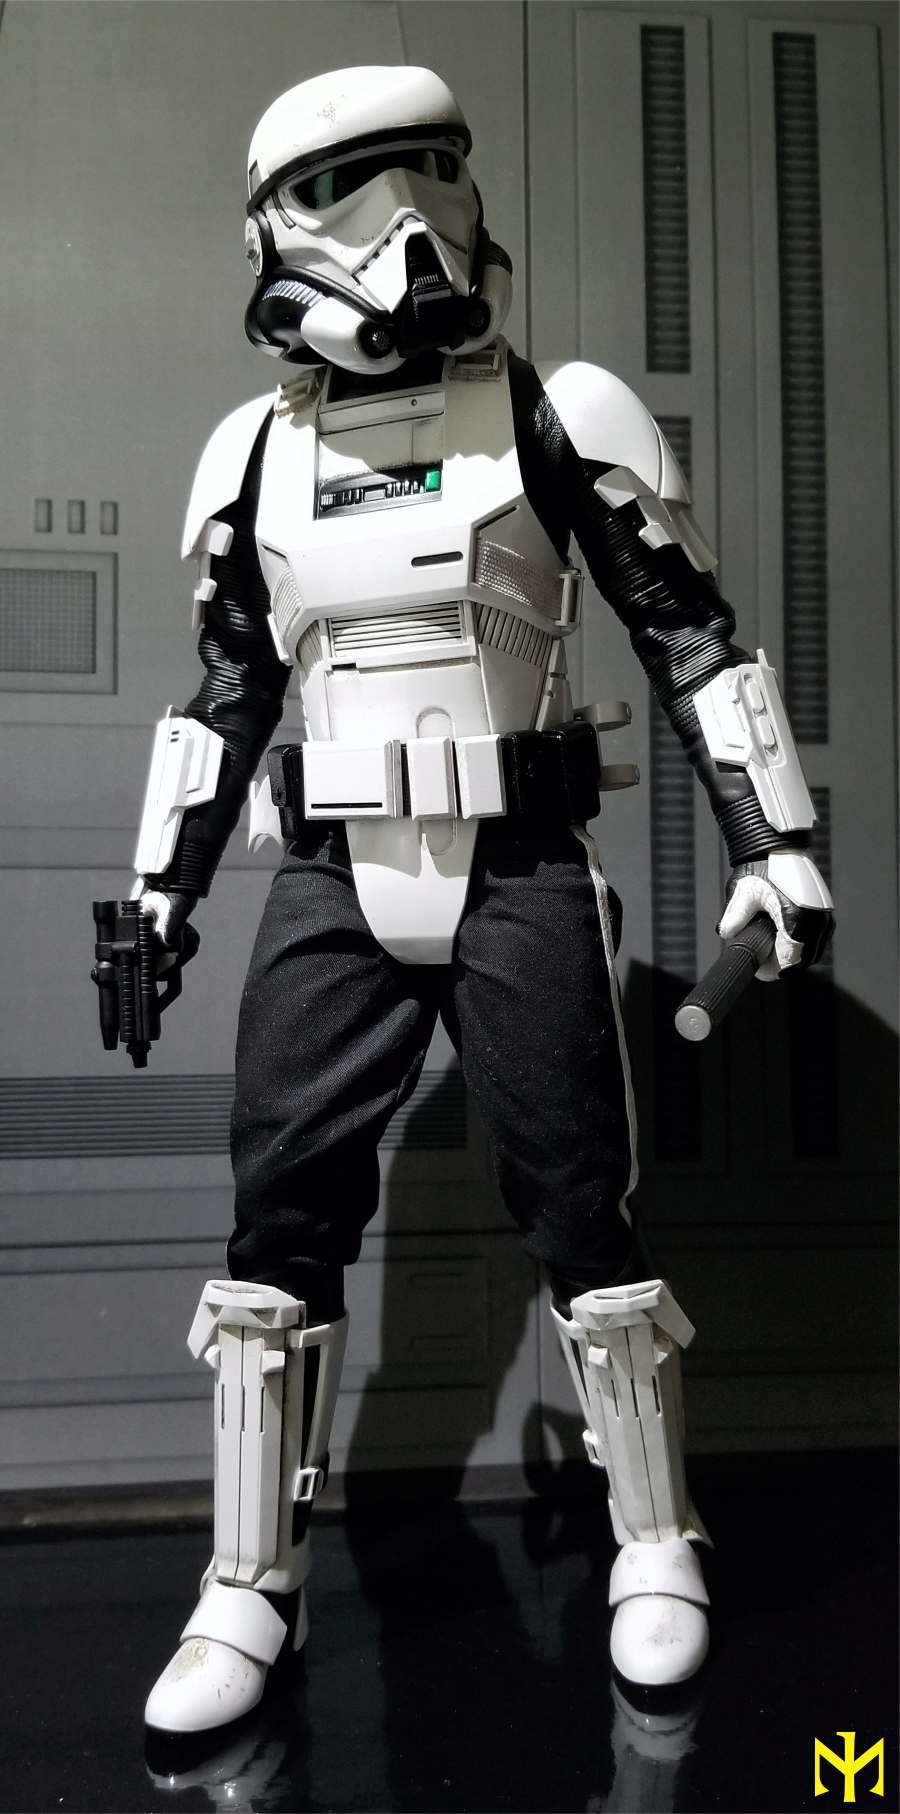 STAR WARS Patrol Trooper by Hot Toys - Review Htswpt10